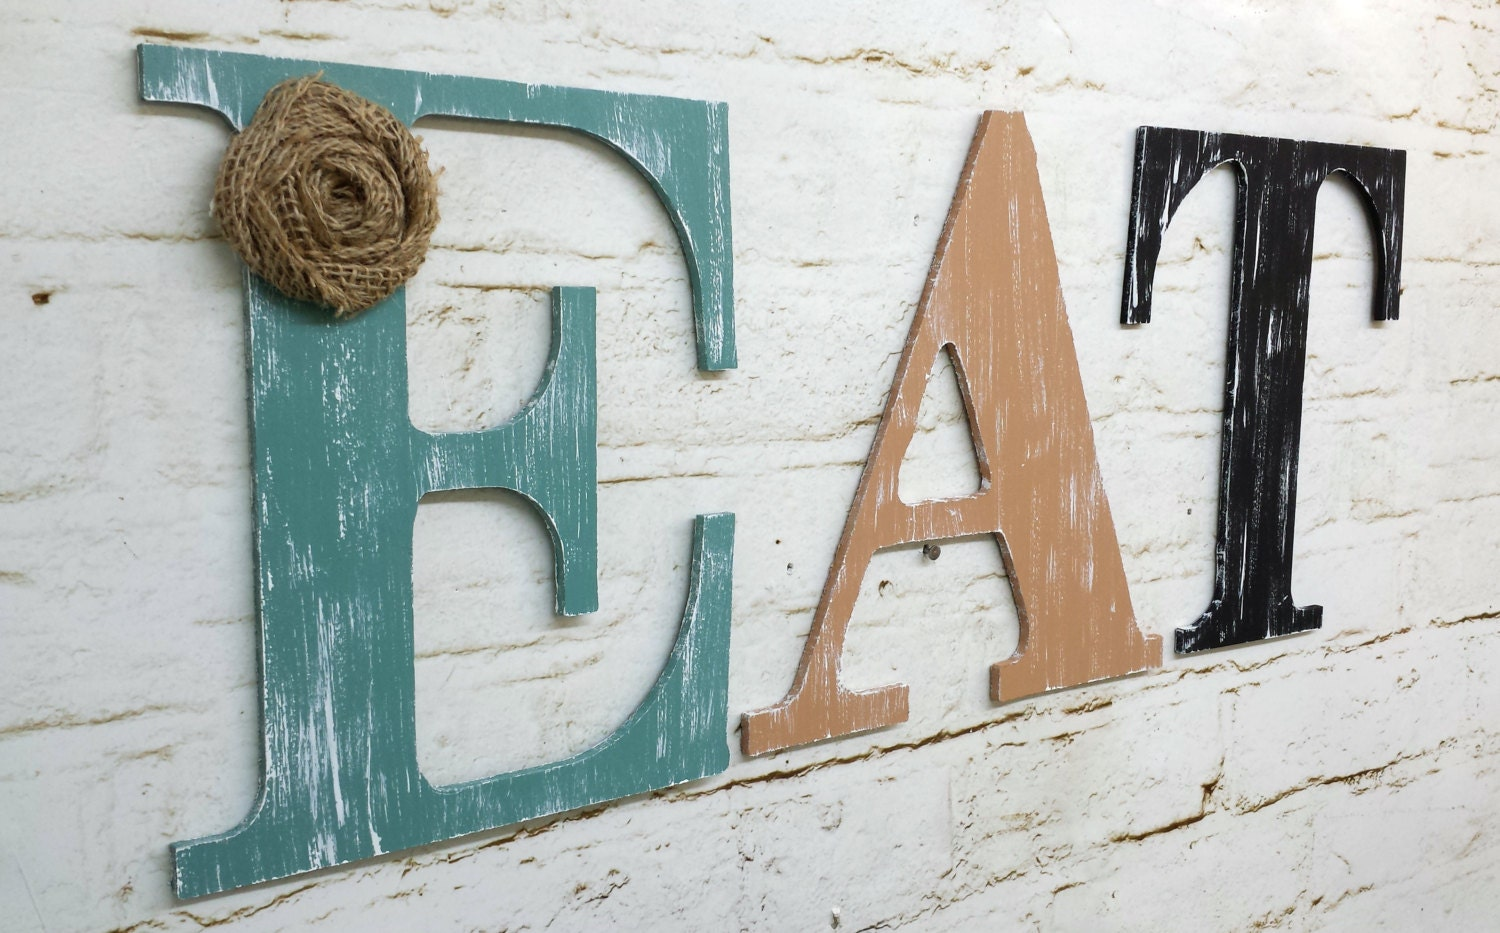 Rustic Chic Wooden Letter EAT Kitchen Home Decor Wall Hanging